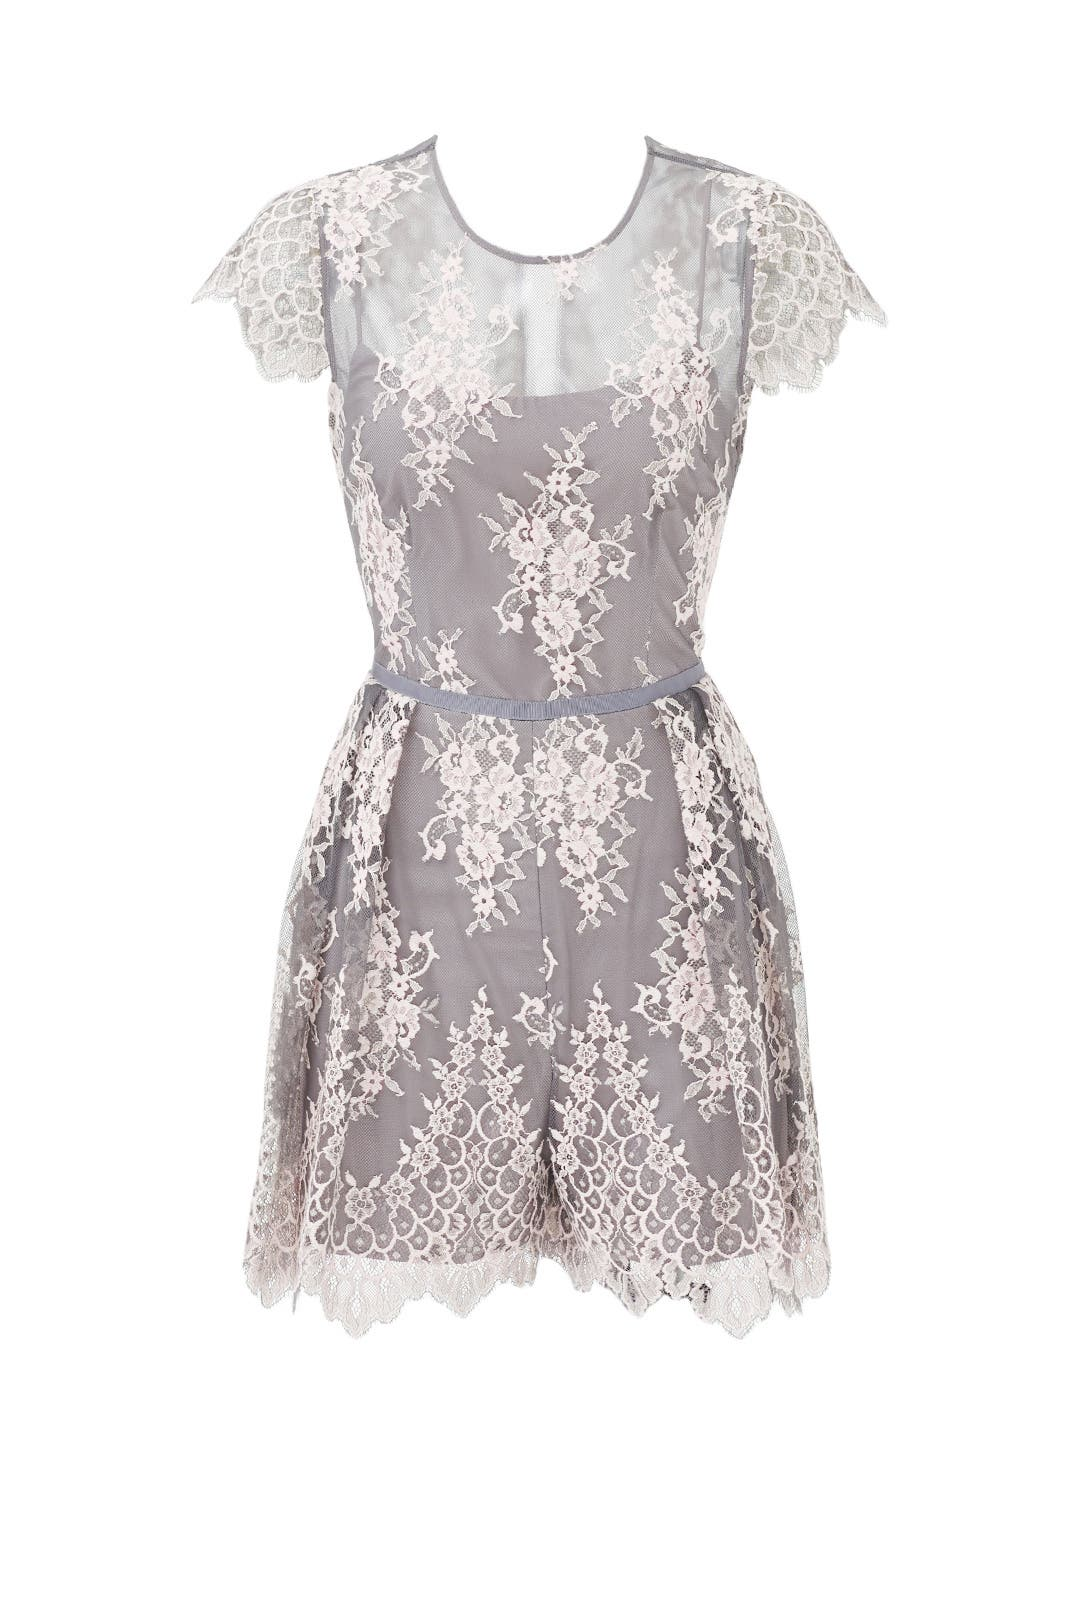 Silver pearl marisol white lace 1 - Melanie Lace Romper By Nha Khanh